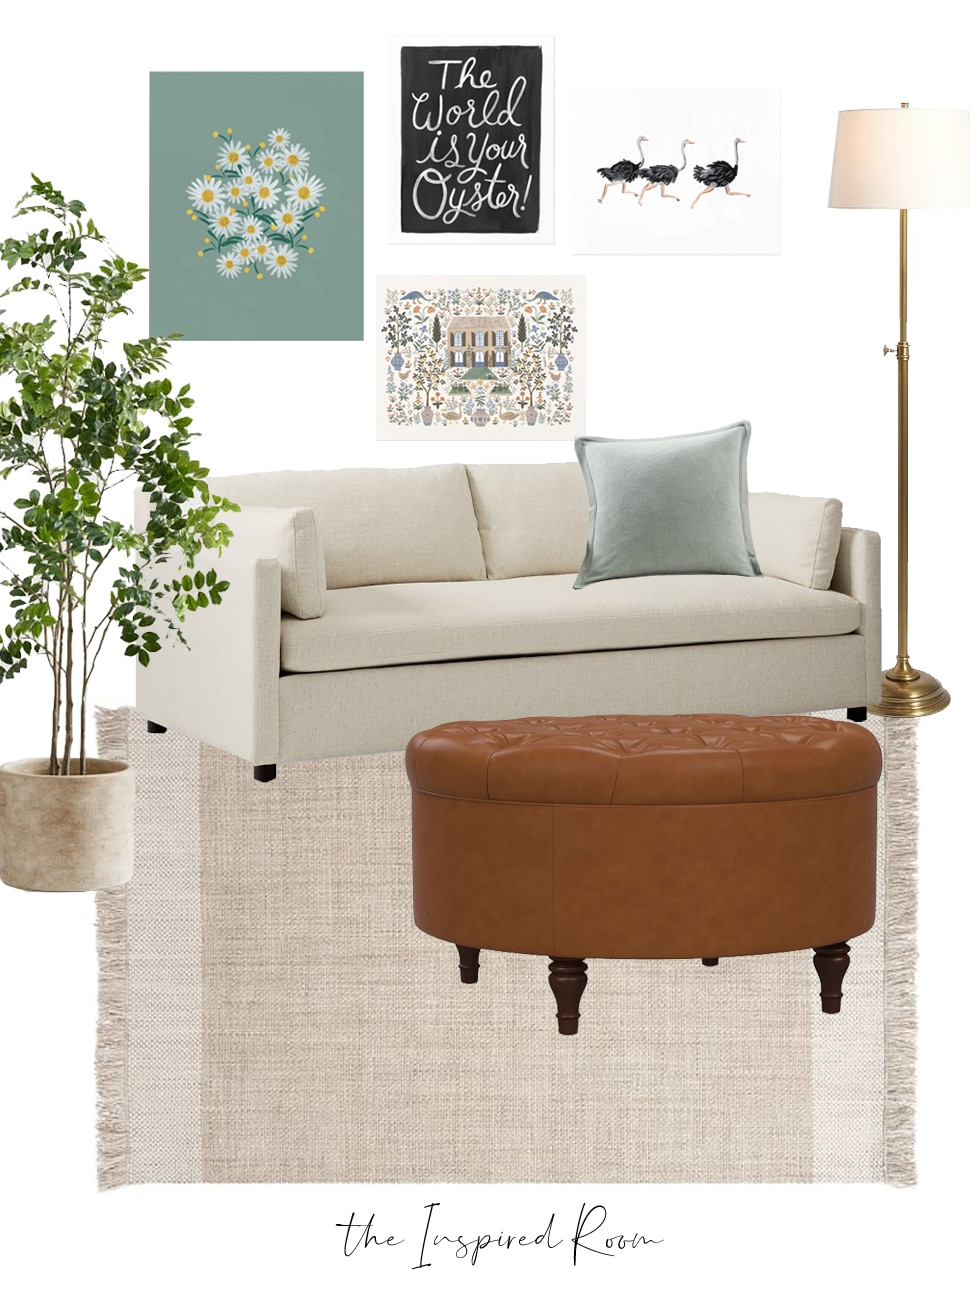 3 Common Decorating Mistakes with Displaying Art (+ Mood Boards + Buy One Get One Free Art Prints)